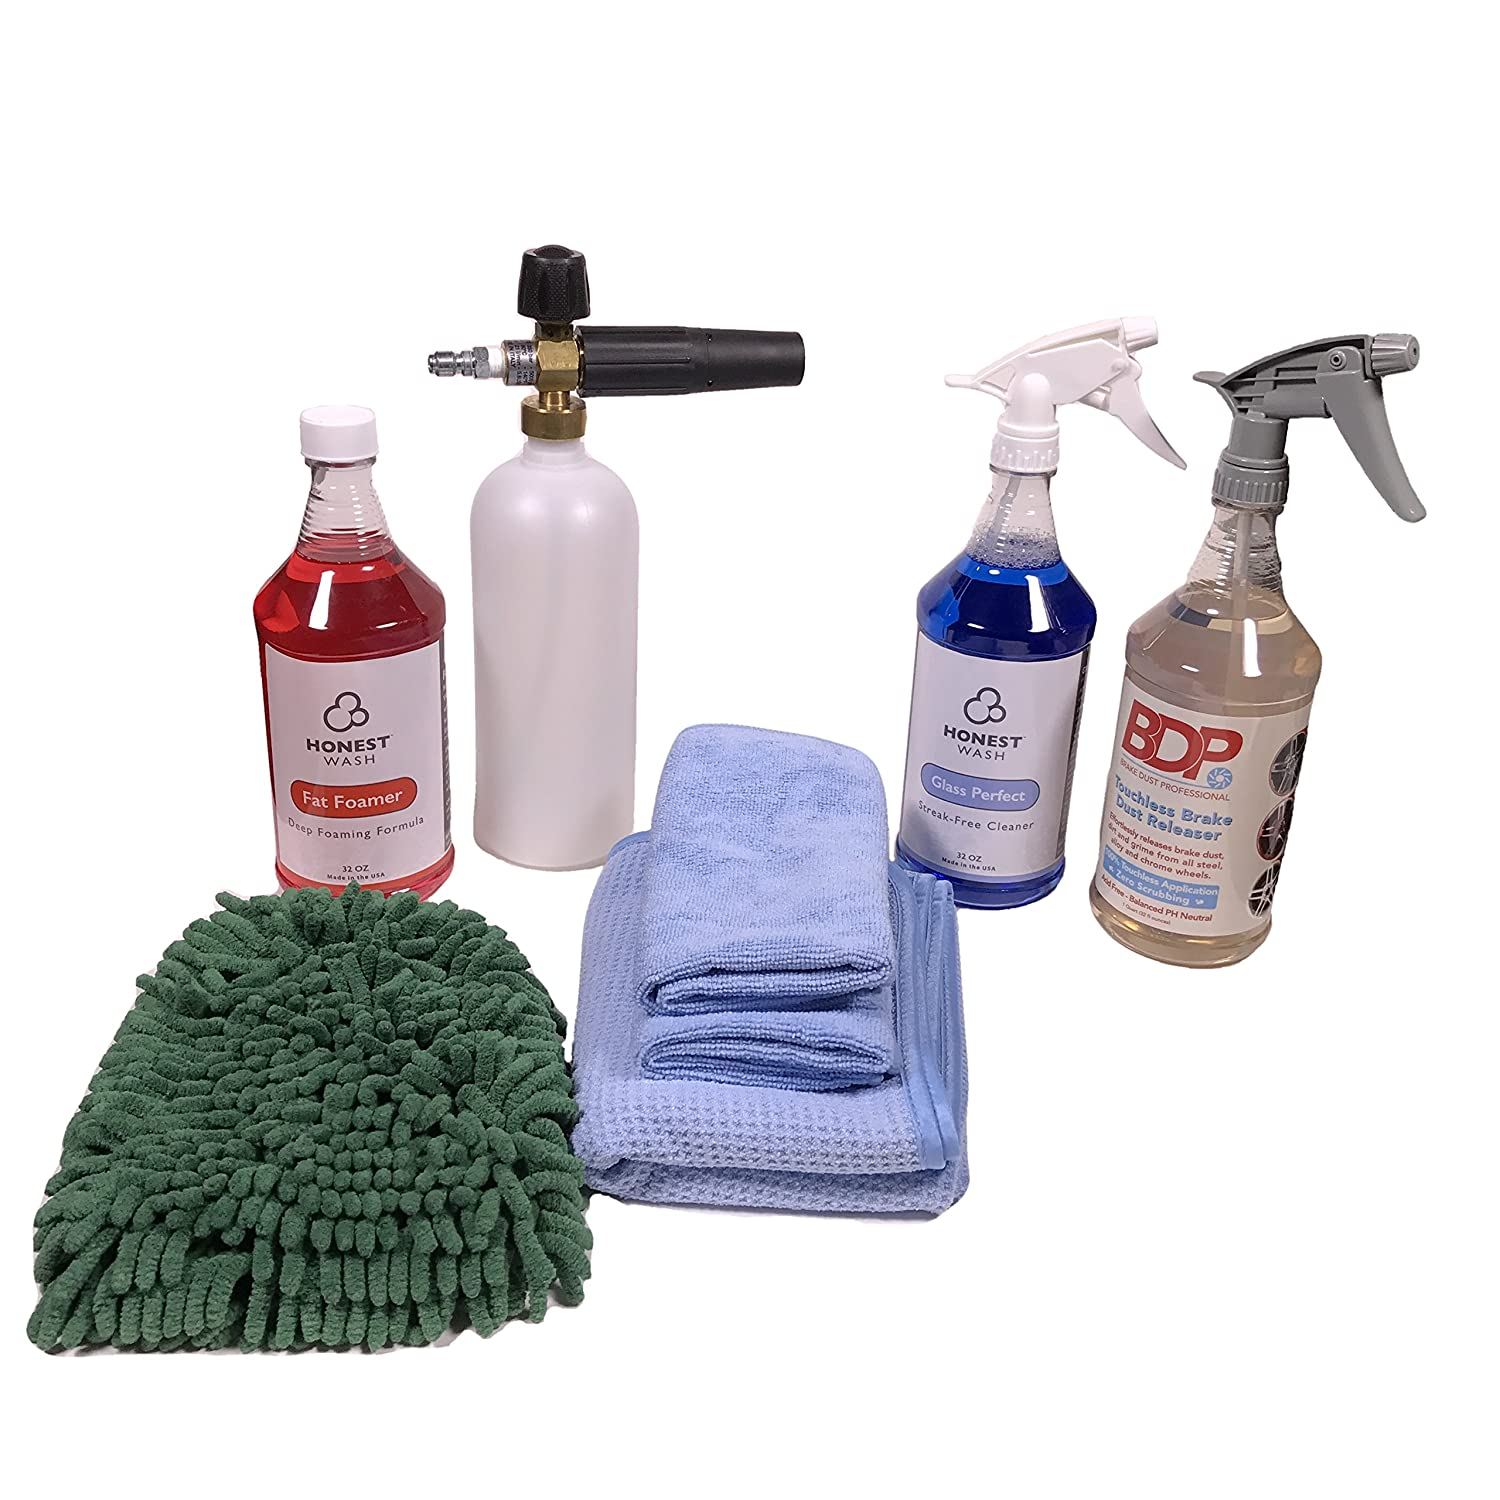 Honest Wash Deluxe Pressure Washer Foam Cannon Kit - Wash Your Car or Truck with a Thick Foam Lather - Includes Everything Needed